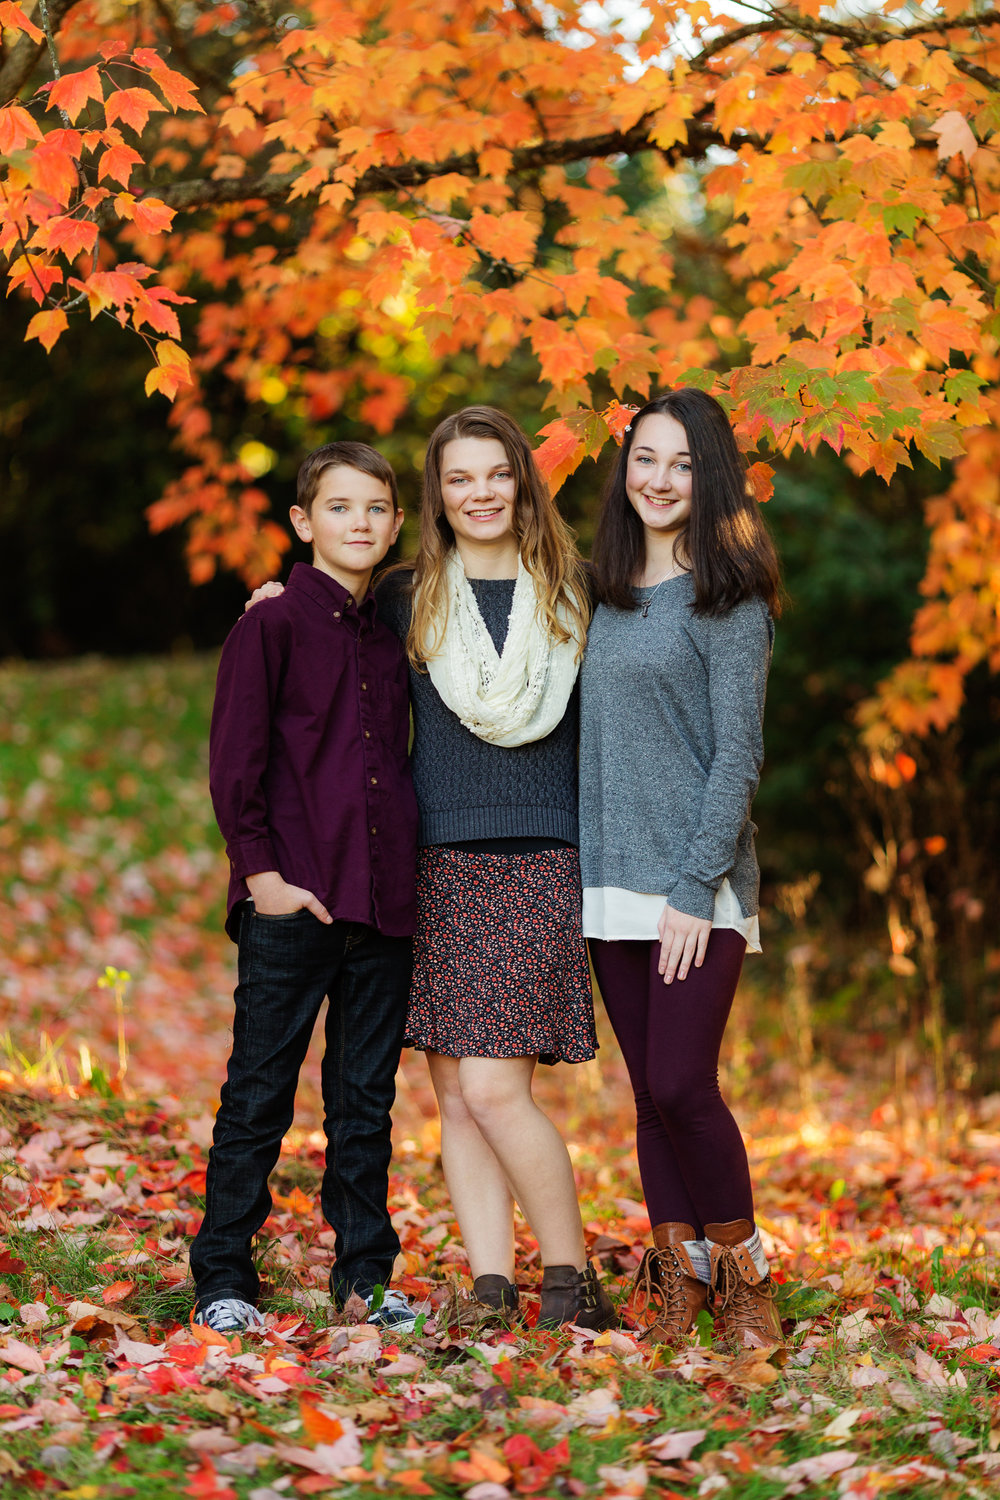 ariellanoellephotography-family-fall-mini-sessions-monroe-duvall-woodinville-redmond-kirland-seattle-skyline-bellevue-area-photographer-highschool-seniors-1-6.jpg